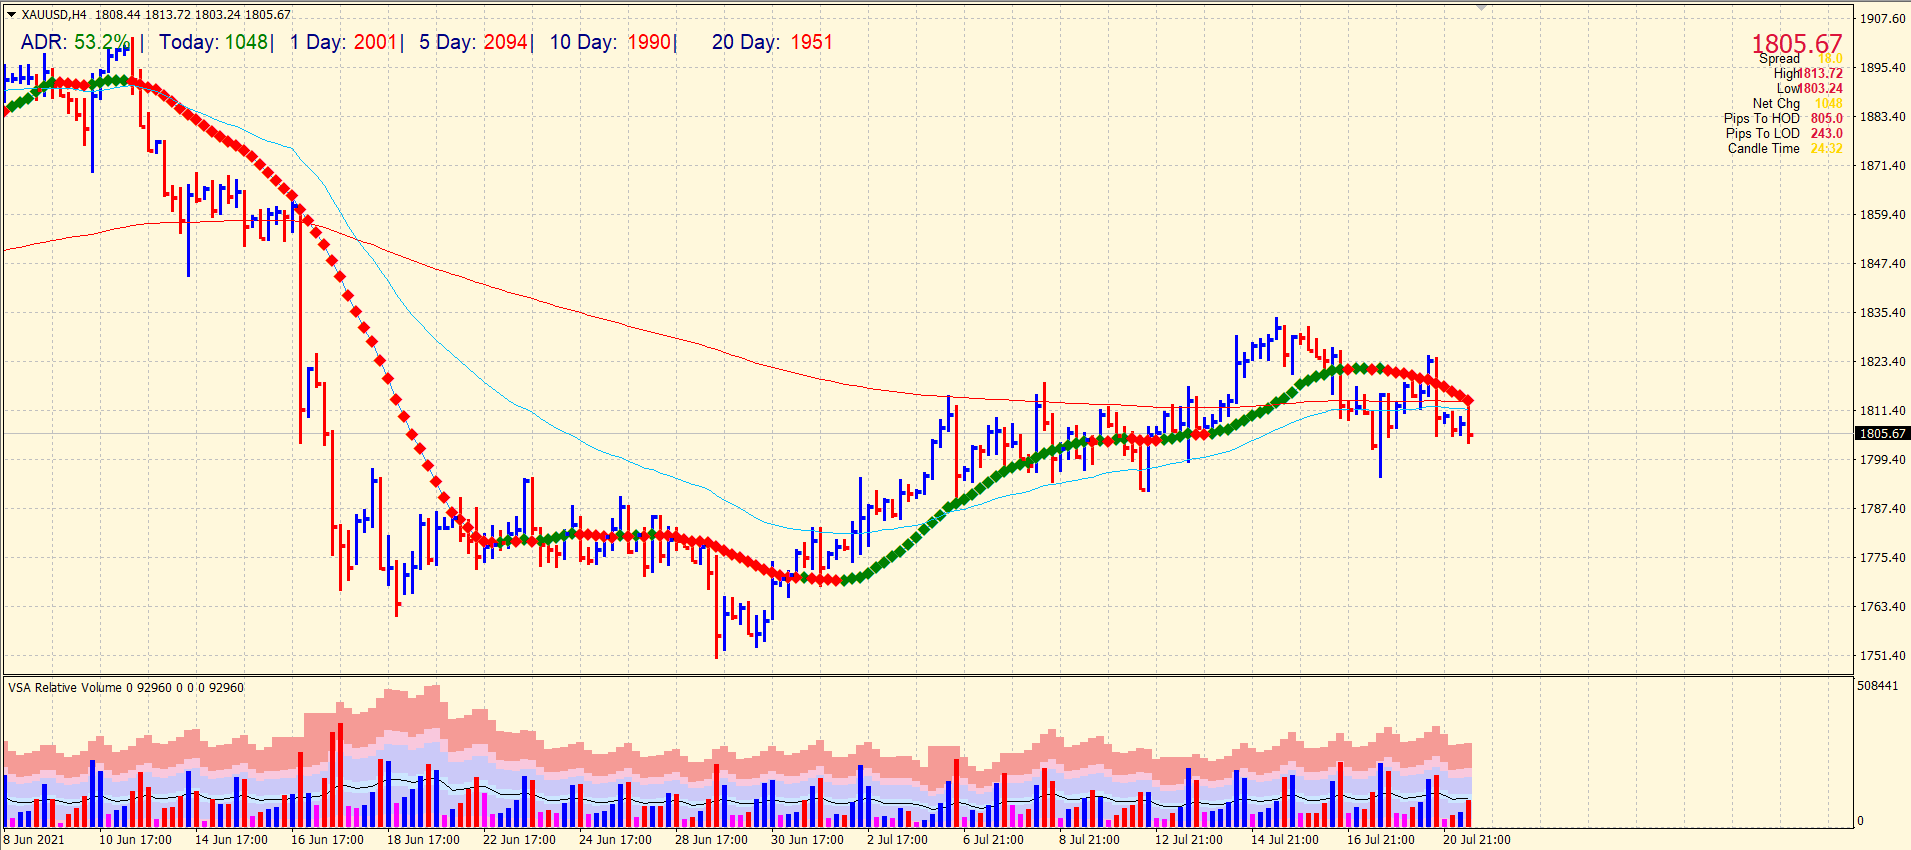 Gold outlook on 4-hour chart